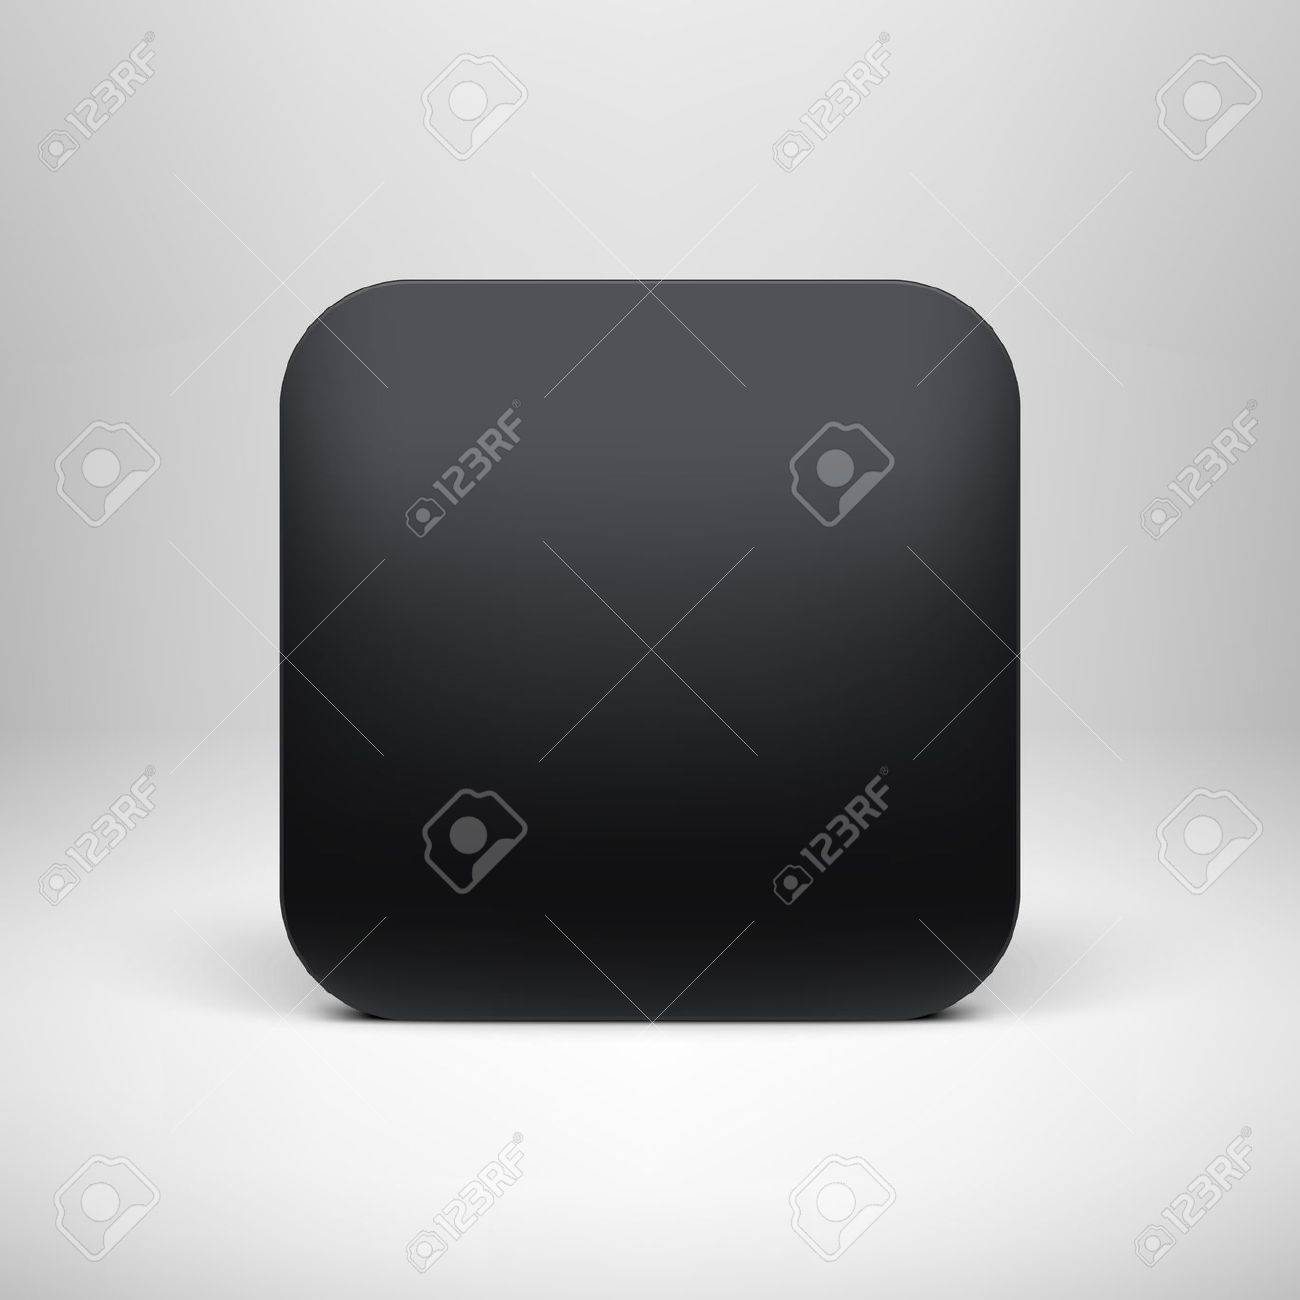 Technology black blank app icon  button  template with realistic shadow and light background for internet sites, web user interfaces  ui  and applications  app   Vector design illustration Stock Vector - 19290058